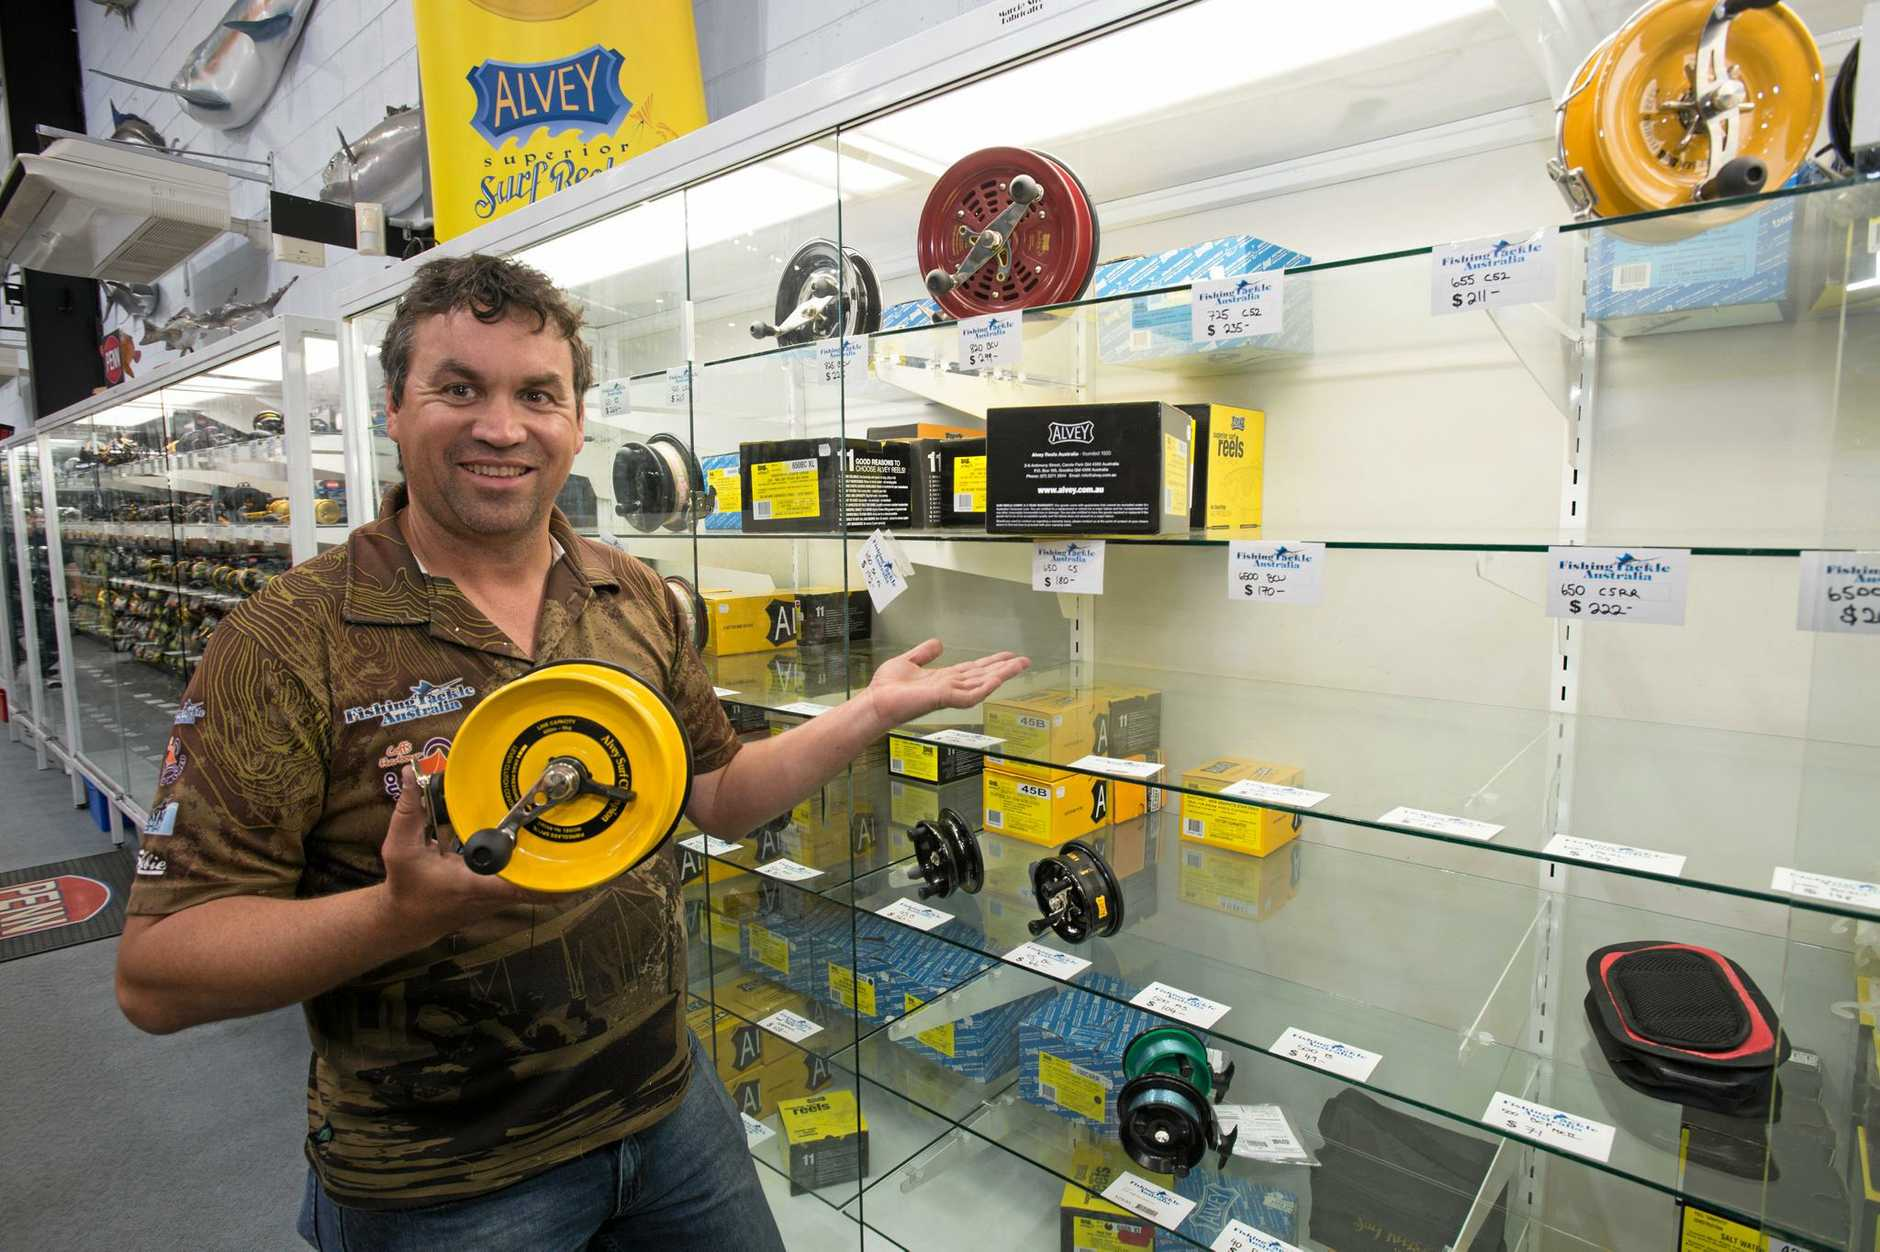 Alvey reels are flying off the shelves at Fishing Tackle Australia.